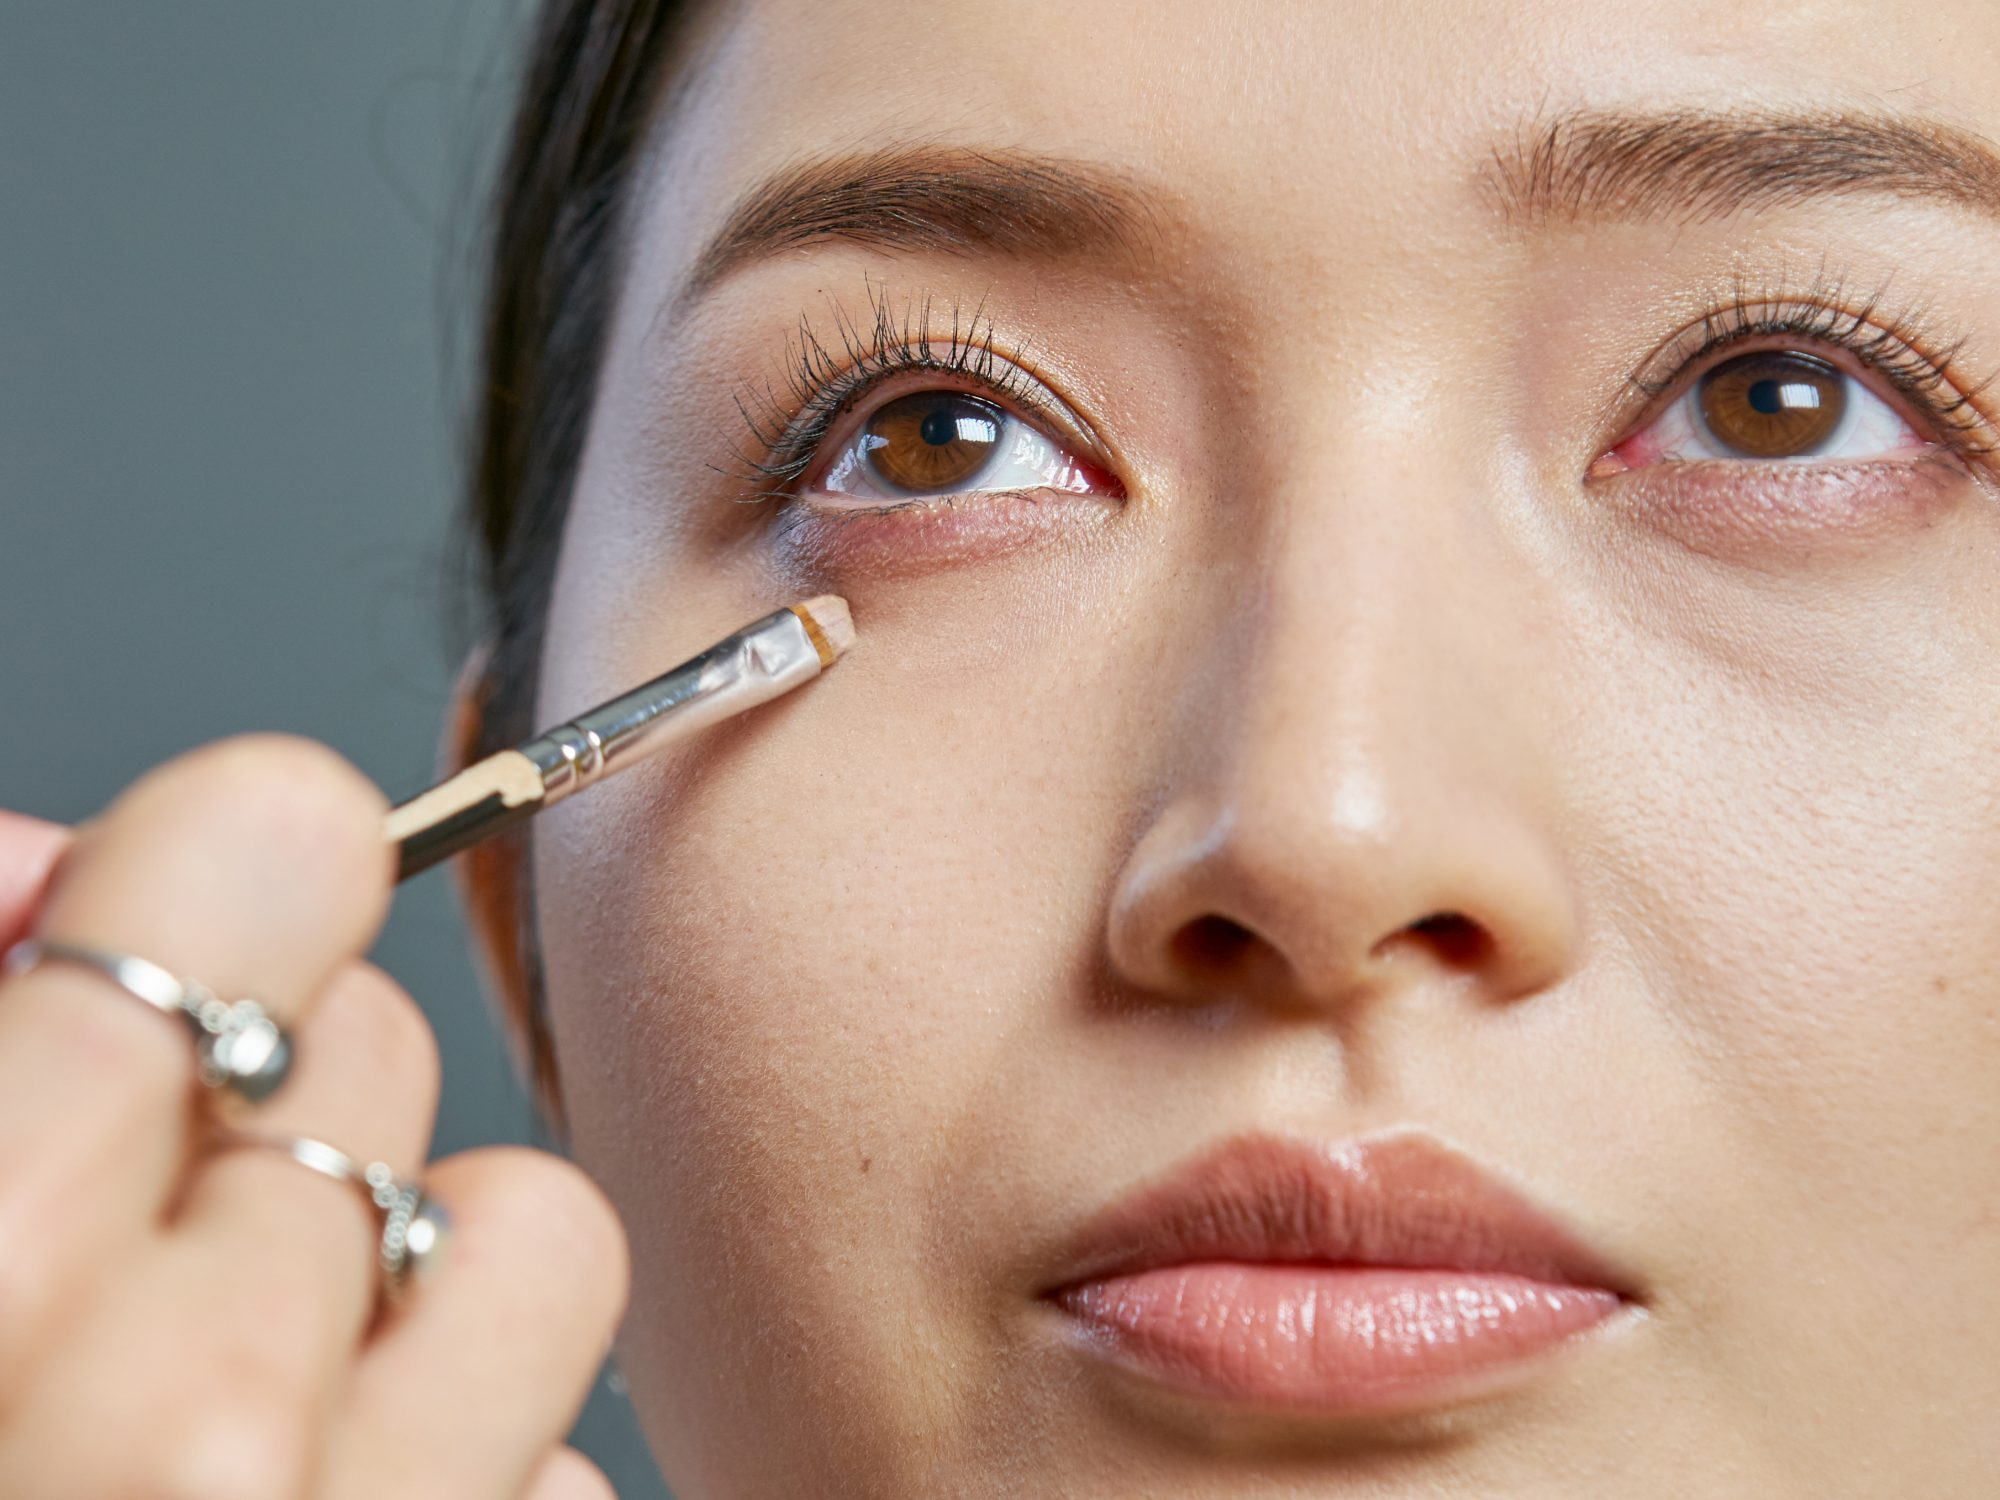 how-to-color-correct-undereye-circles: makeup artist applying concealer under a woman's eyes